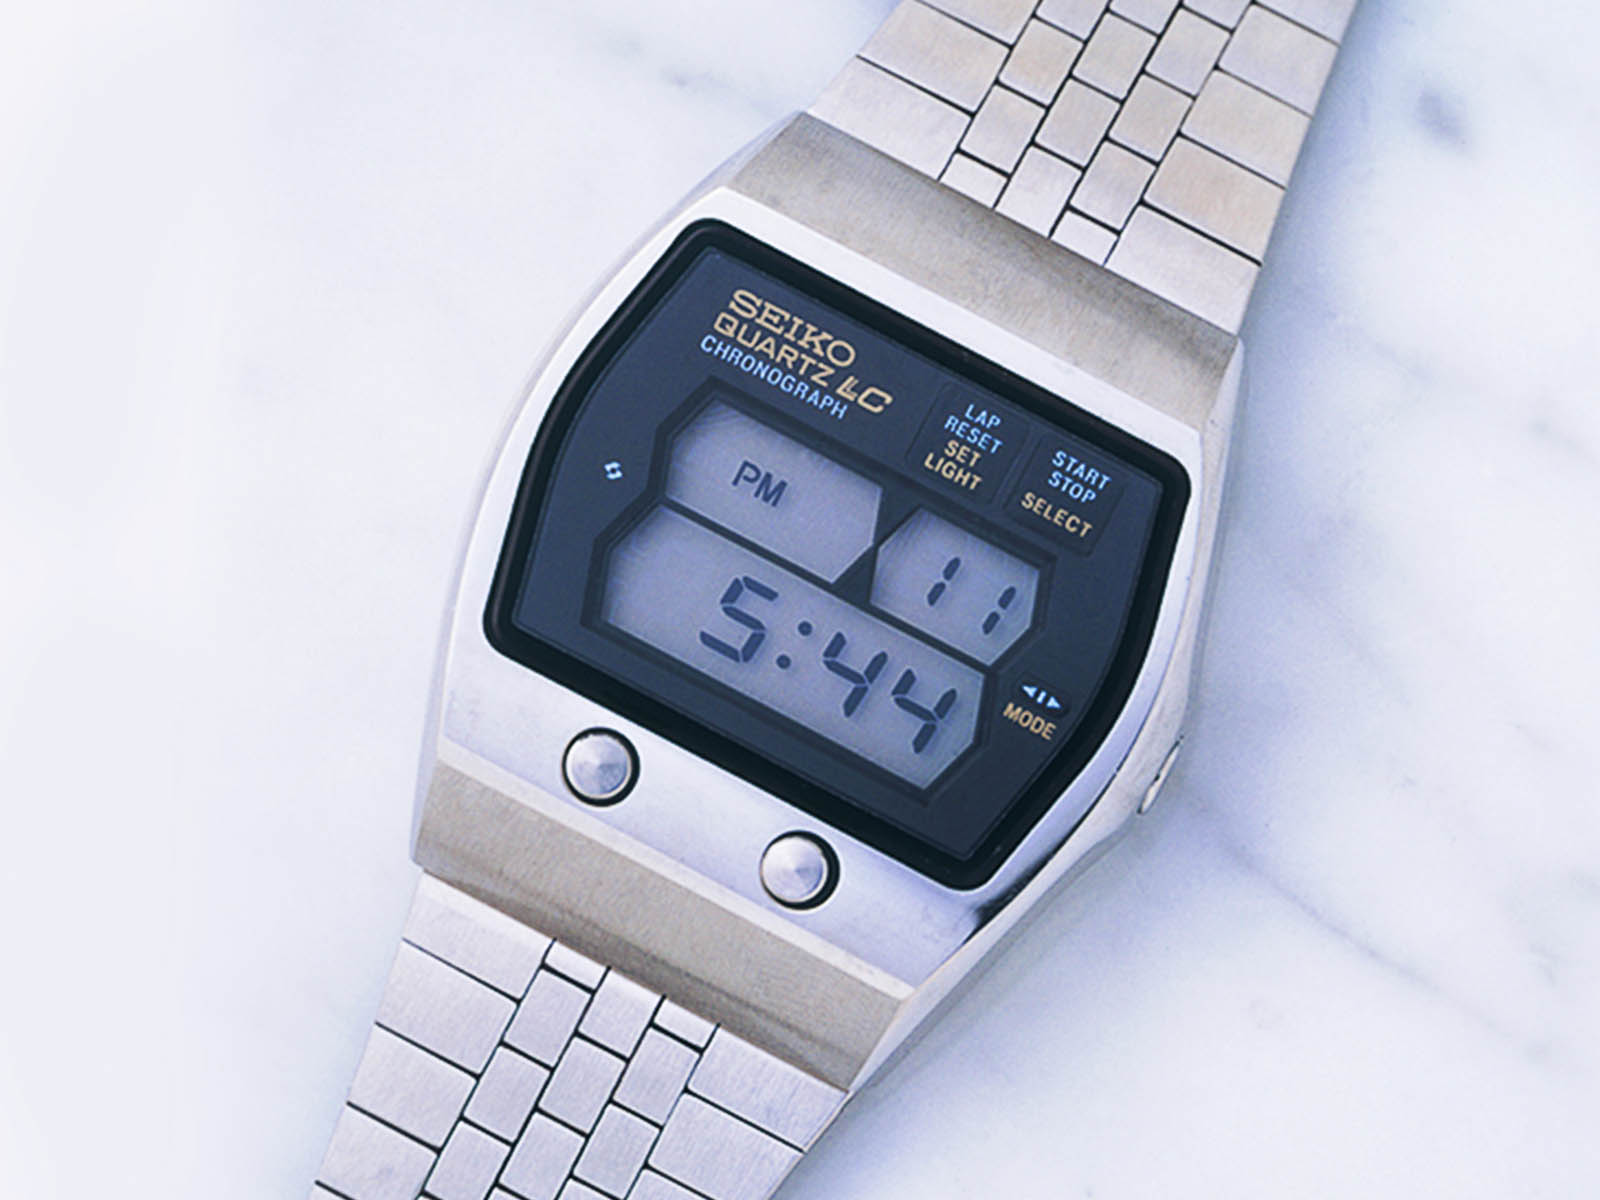 0634-seiko-the-world-s-first-multi-function-digital-watch-1975.jpg